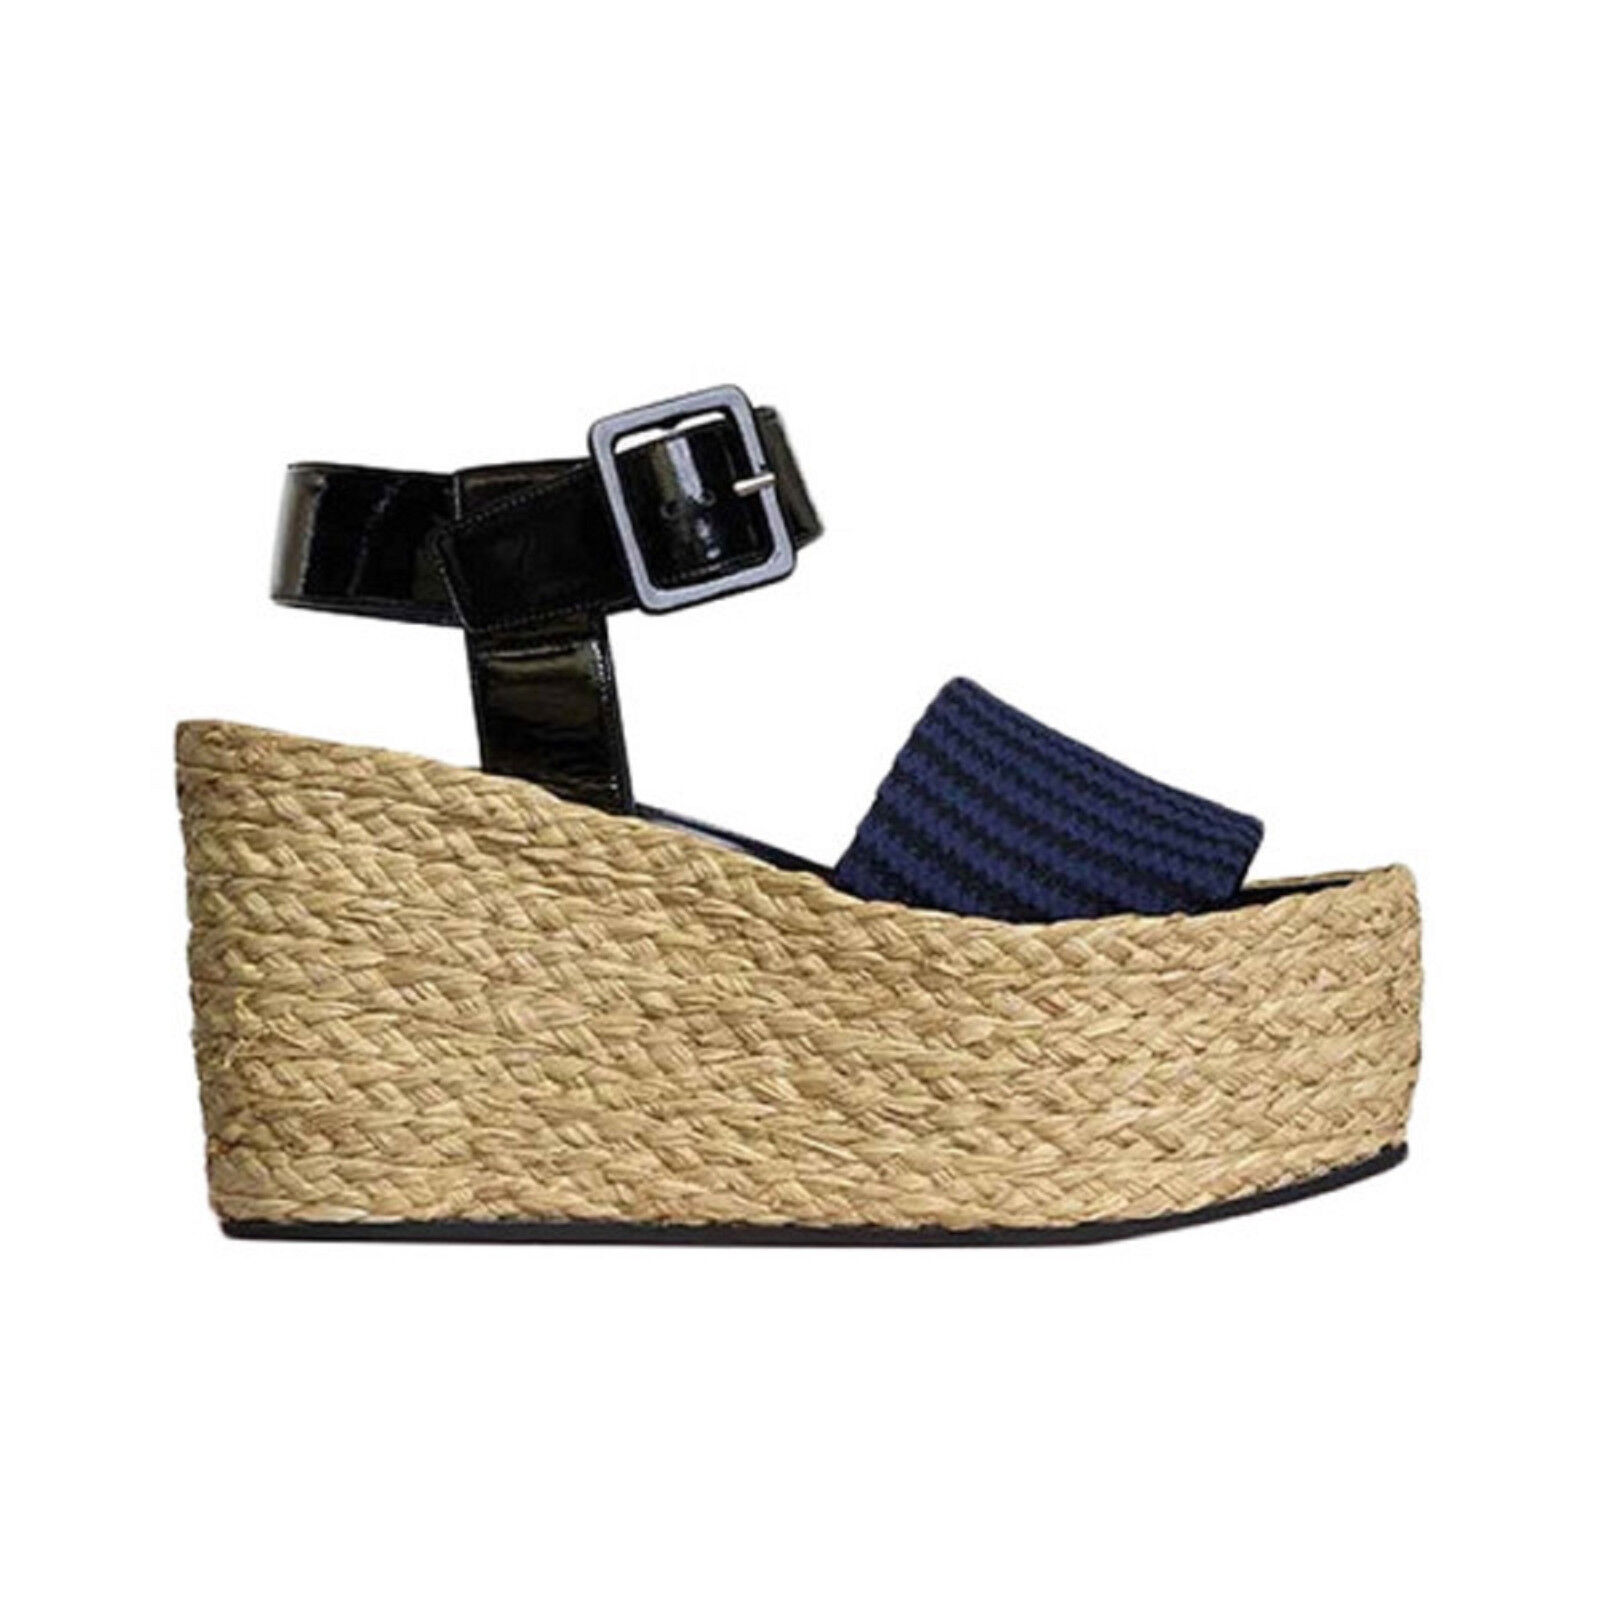 NW AUT CELINE CELINE CELINE STRIPED WEDGE SANDALS RAPHIA PATENT LEATH SZ41 RET 1068 BARGAIN  4770f5